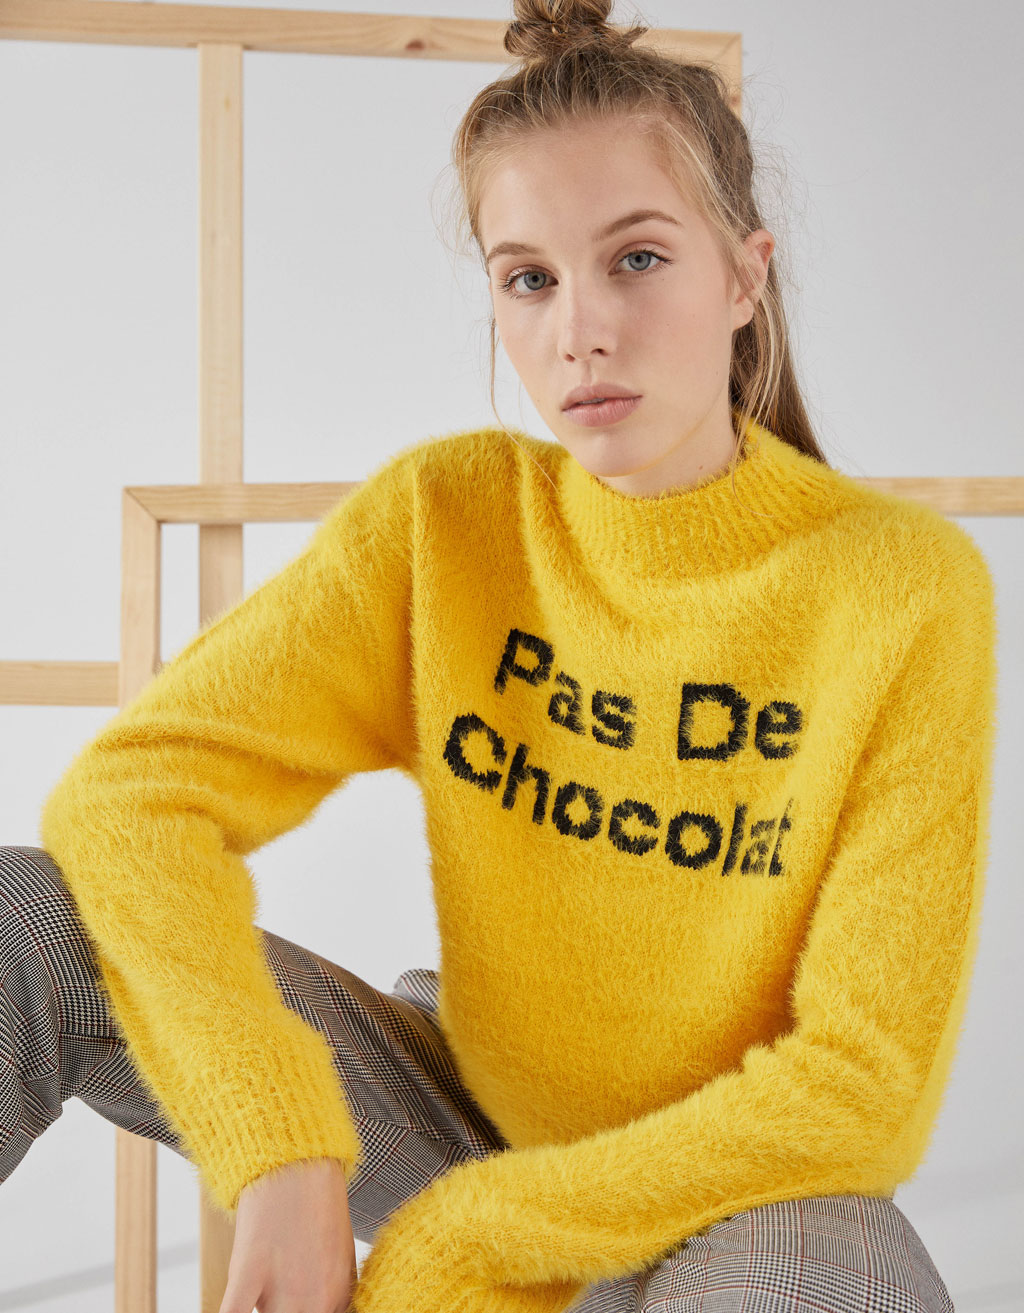 Hair sweater with text